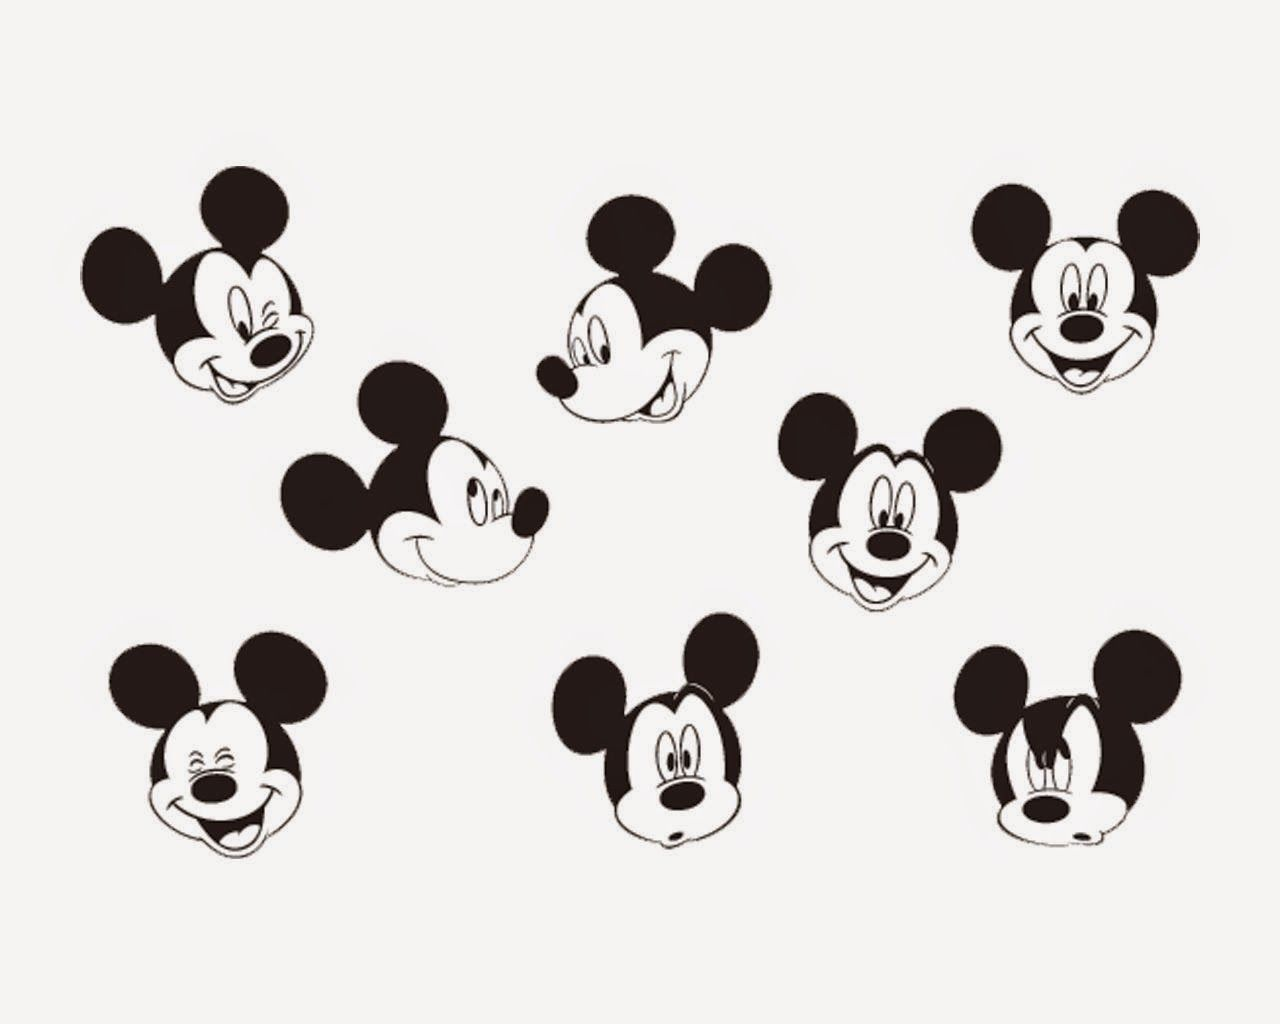 1280x1024 Mickey Mouse Wallpapers Black And White Group (43+)